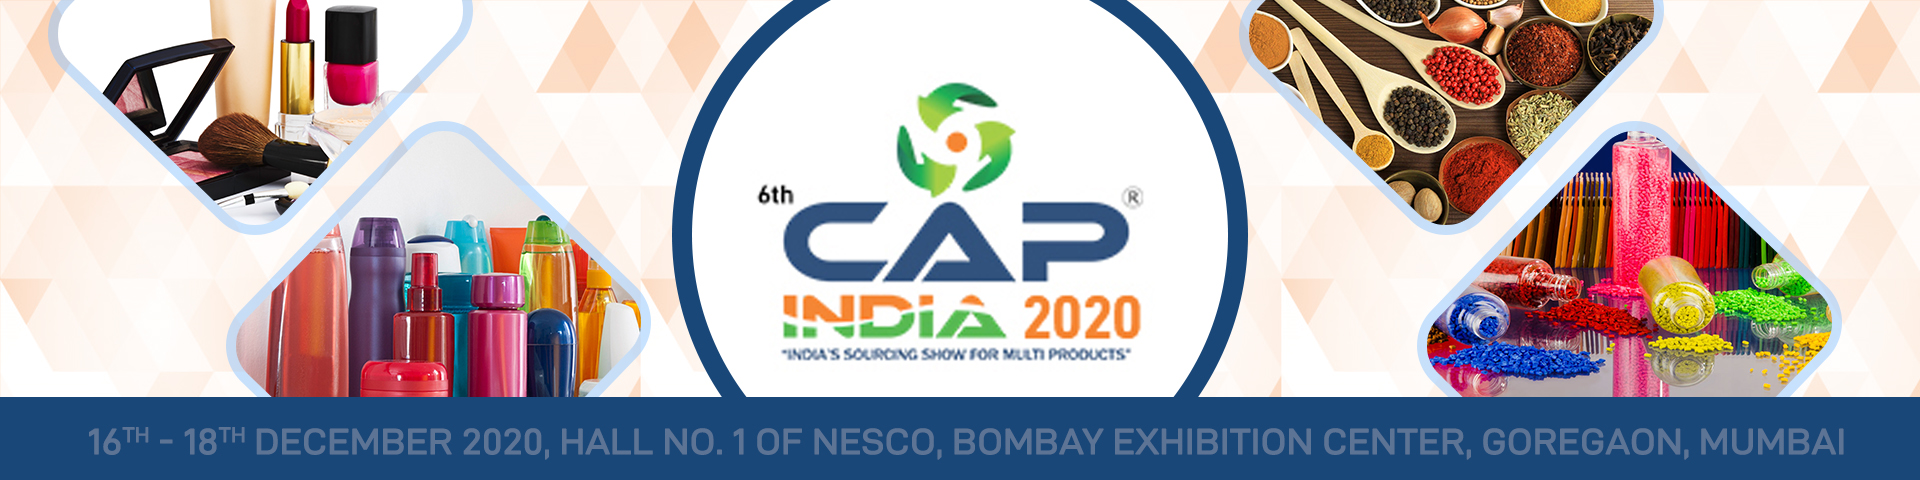 6th Capindia Exhibition 2020